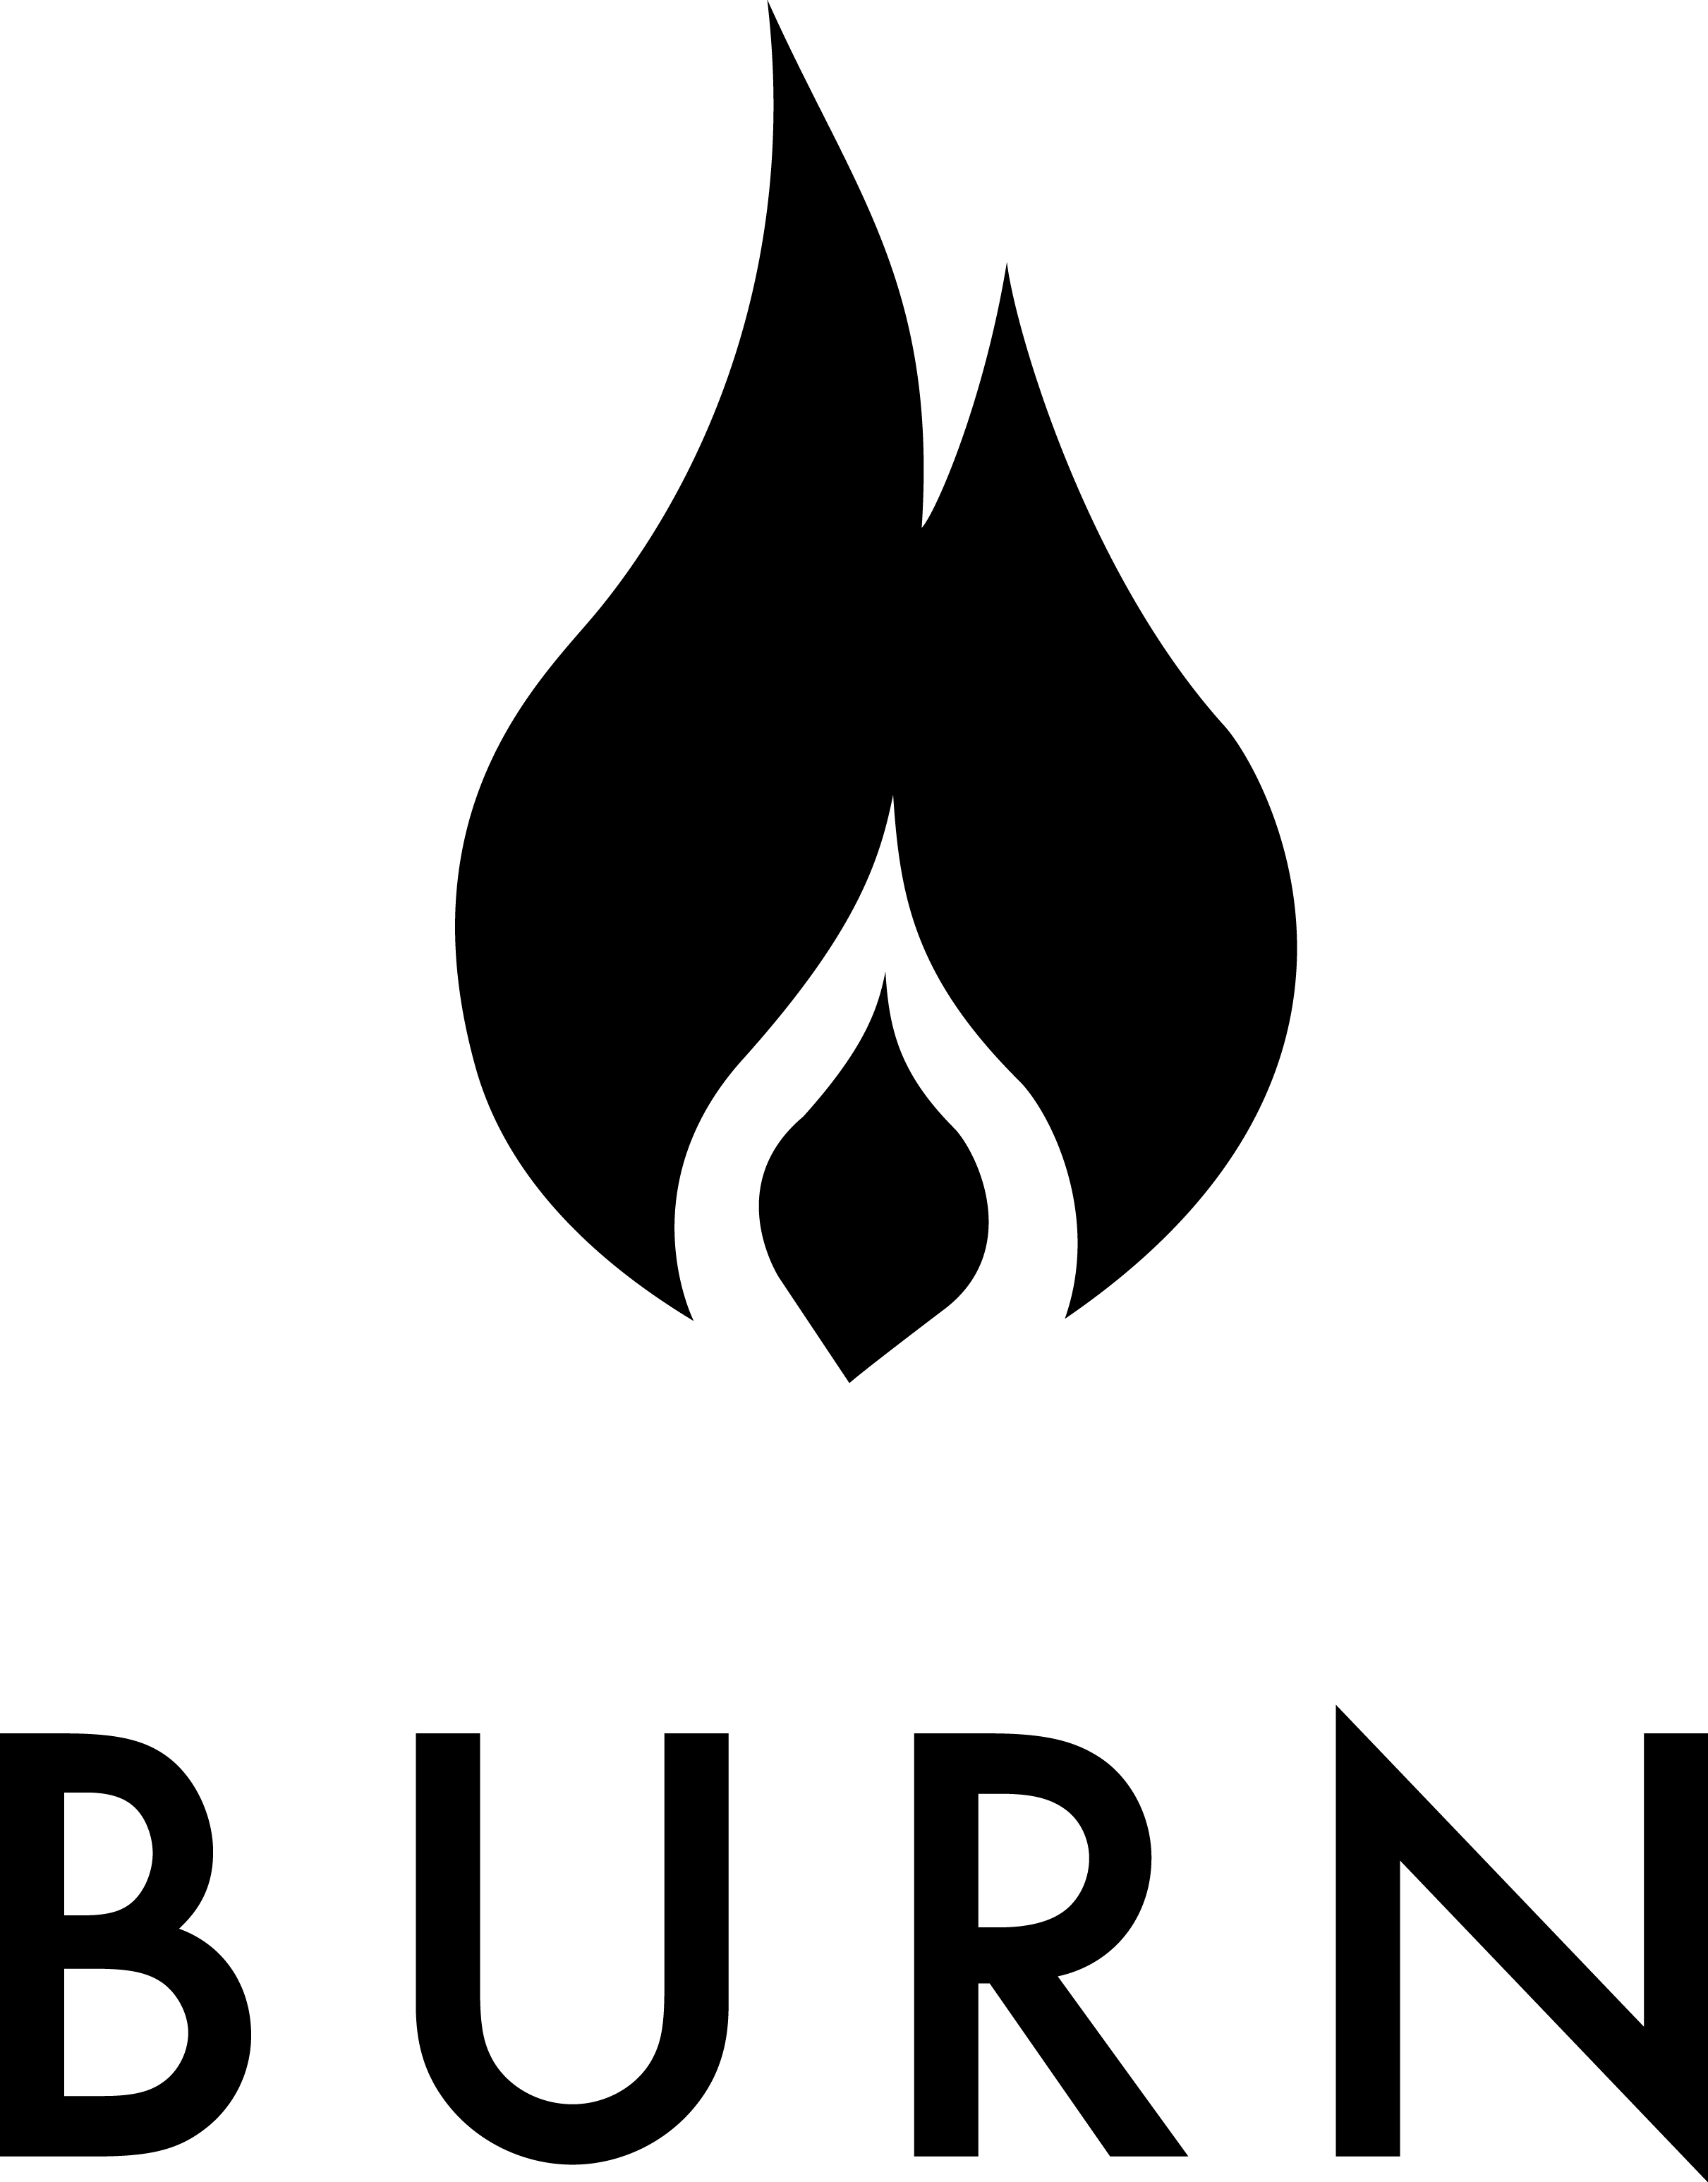 Burning Log PNG - 166258